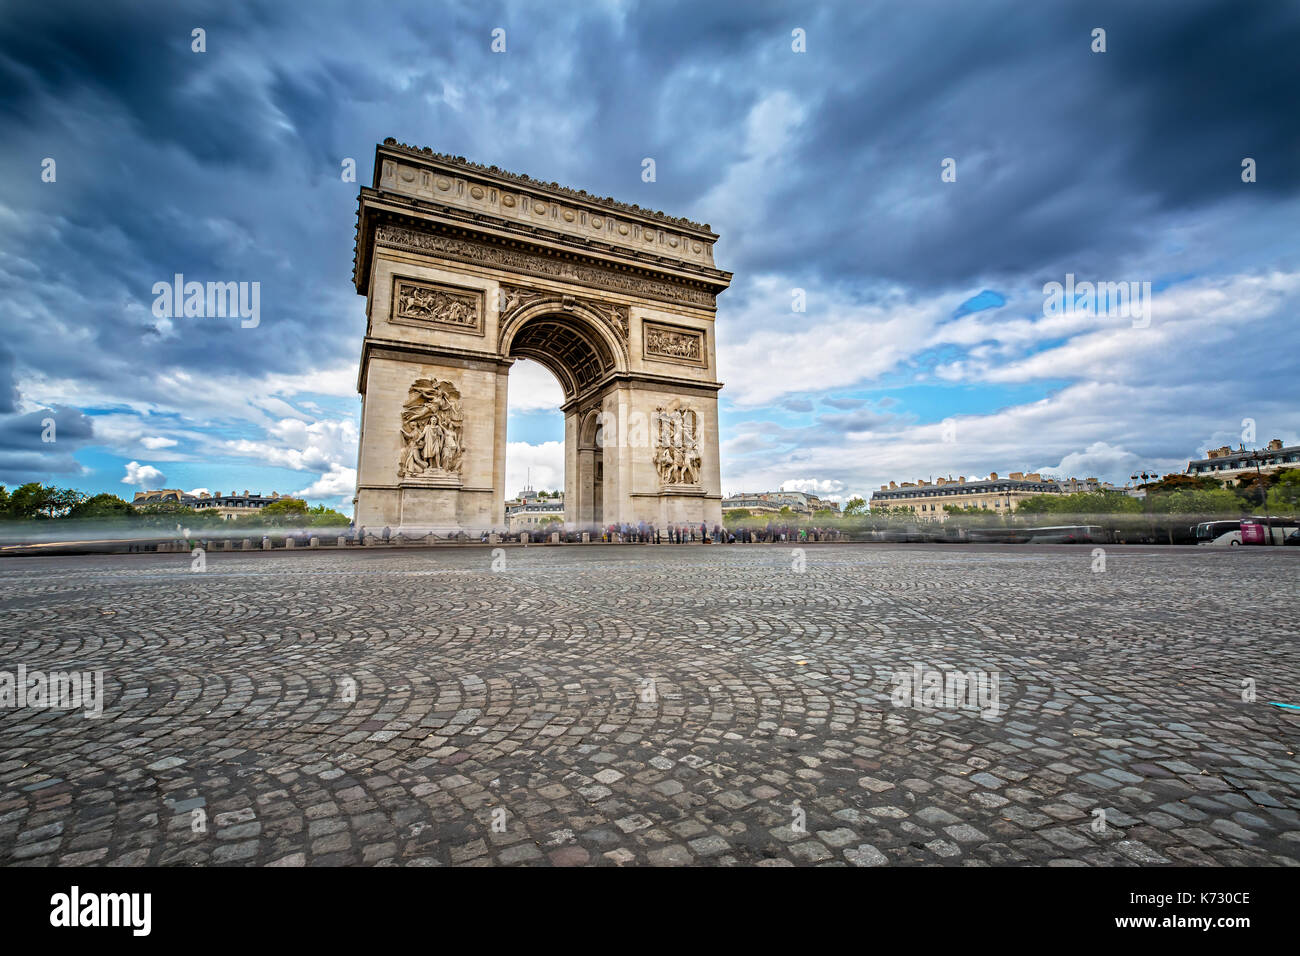 Des nuages sombres venant sur l'Arc de Triomphe à Paris, France Photo Stock